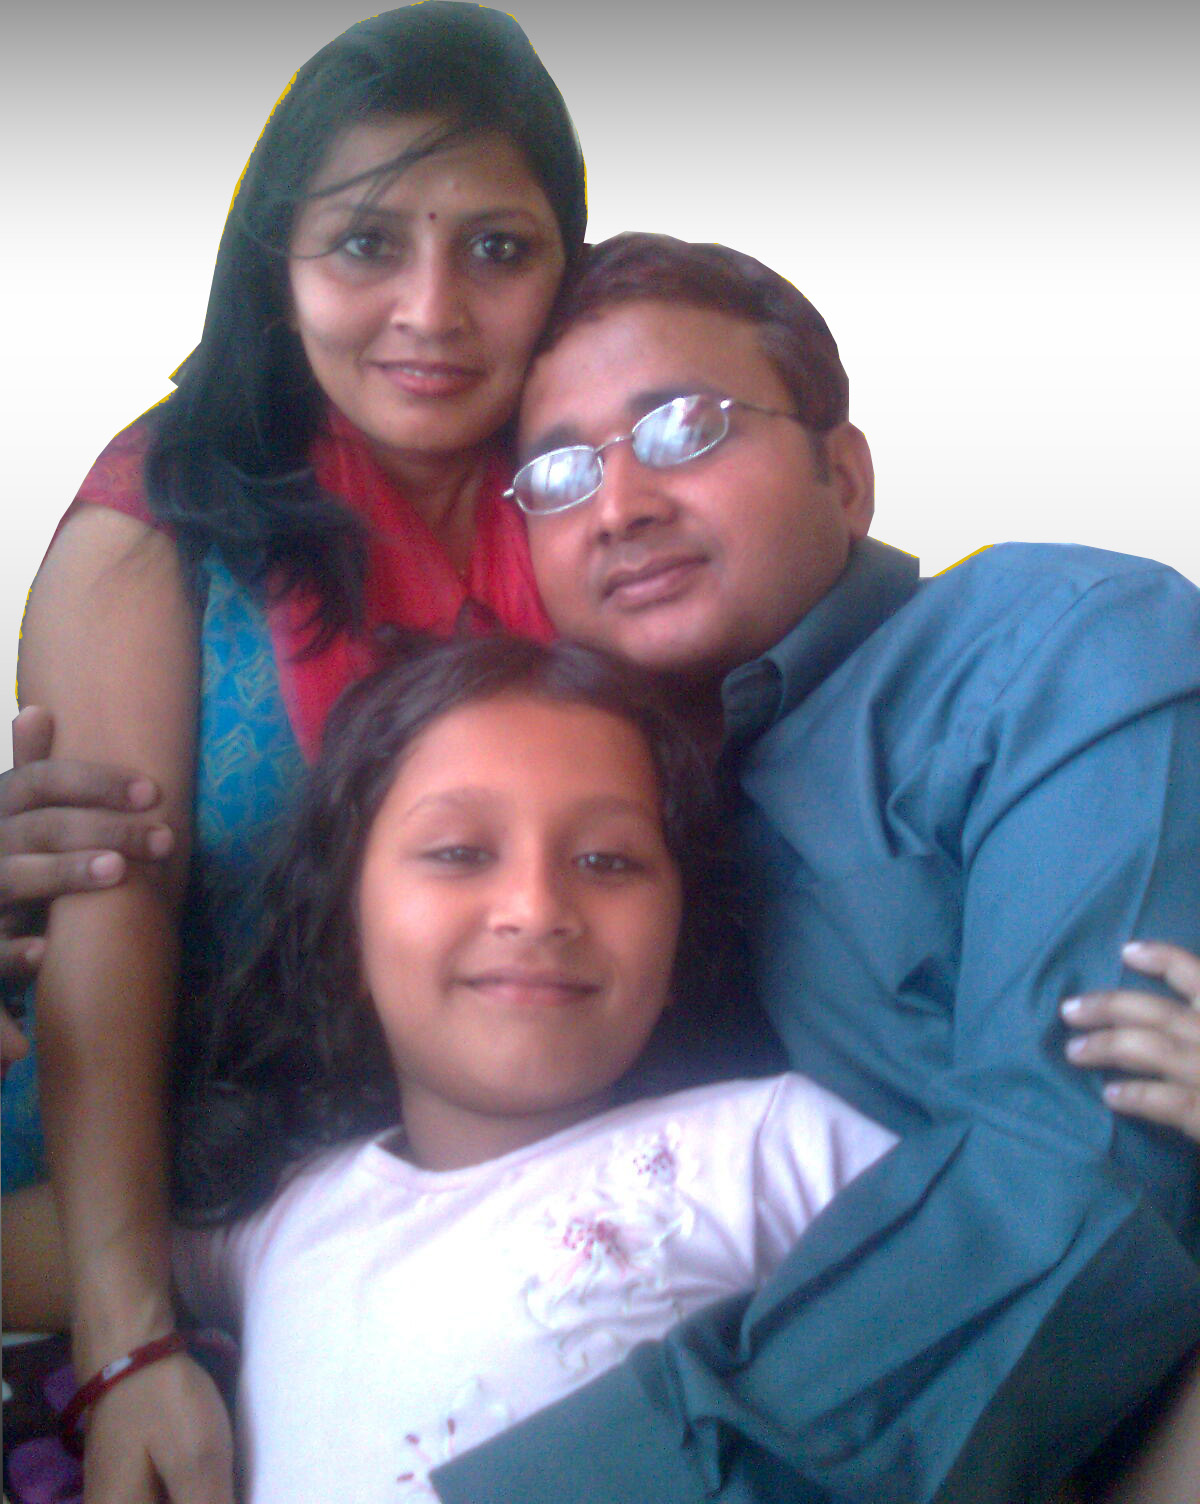 Prajwal with his family